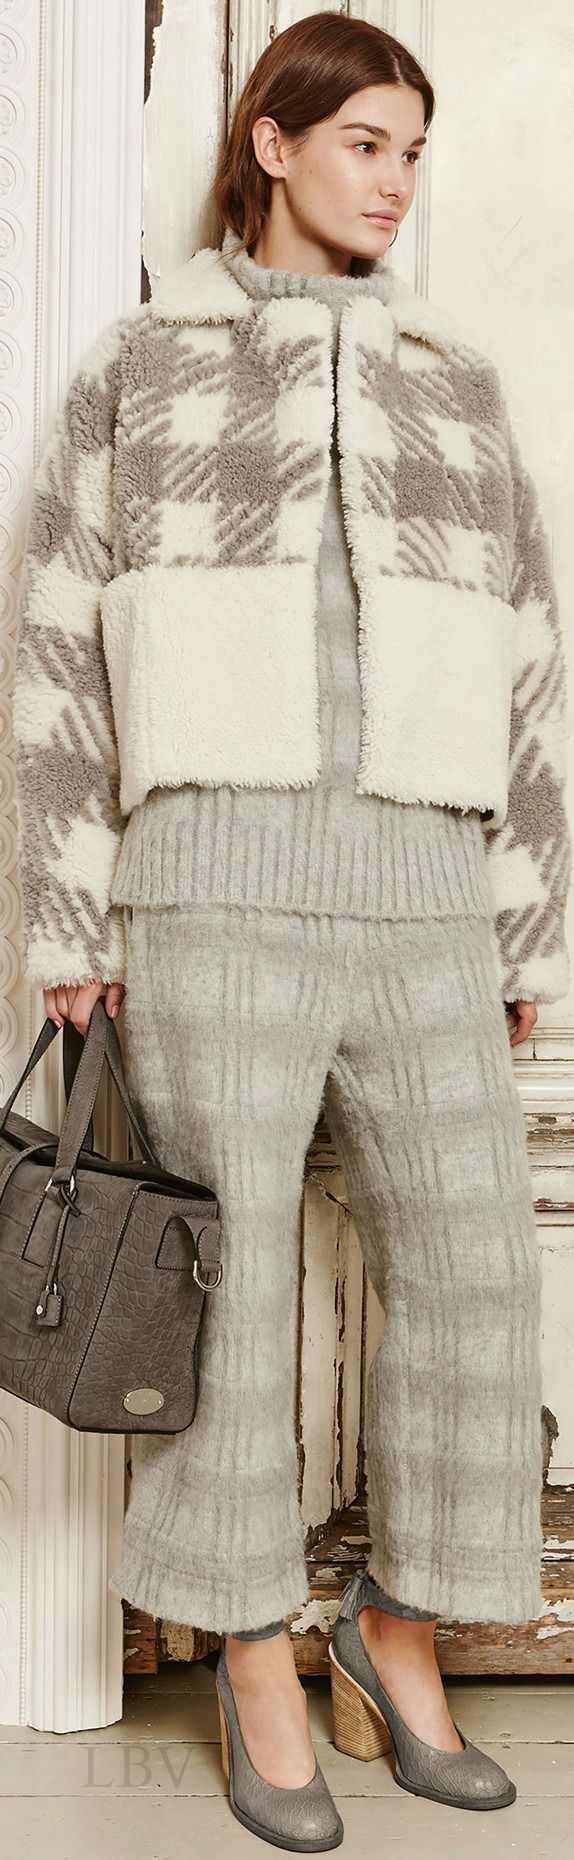 Mulberry.            Fall 2015.              Ready-To-Wear.